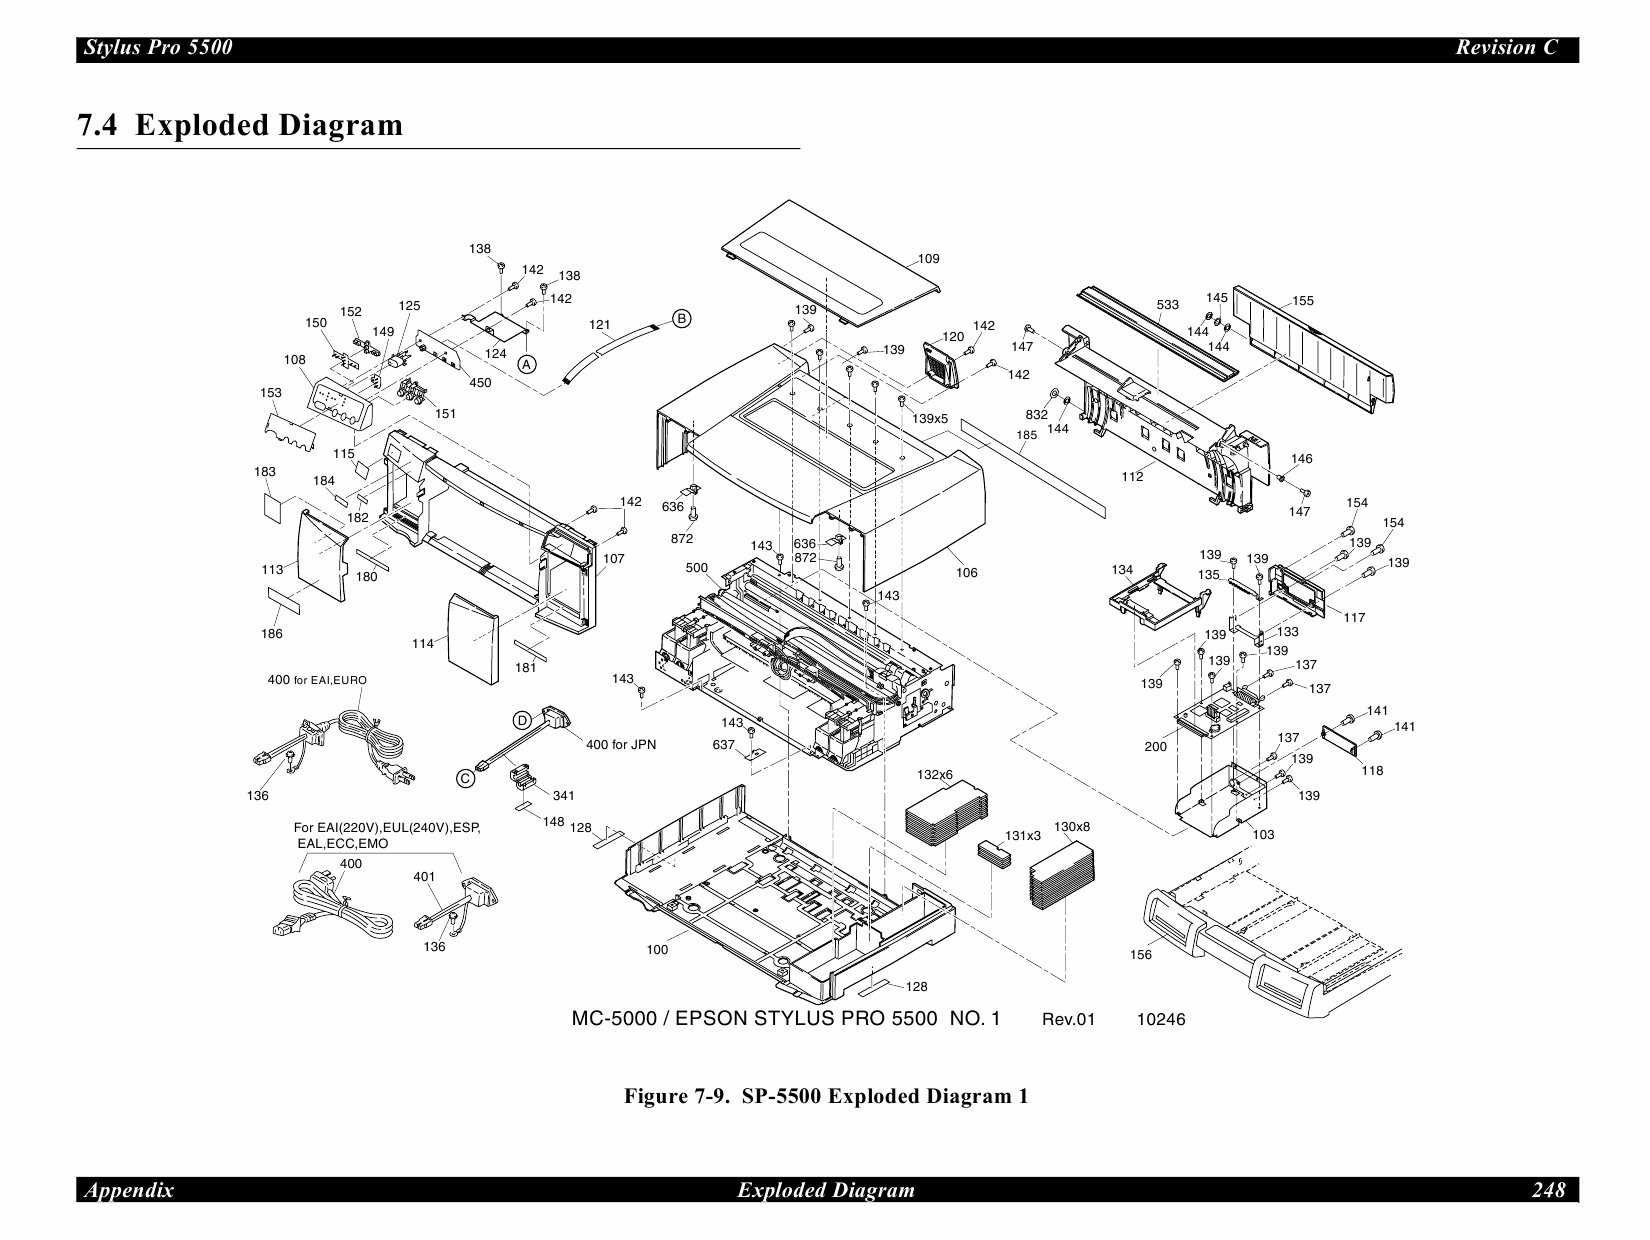 EPSON StylusPro 5500 Parts Manual-5